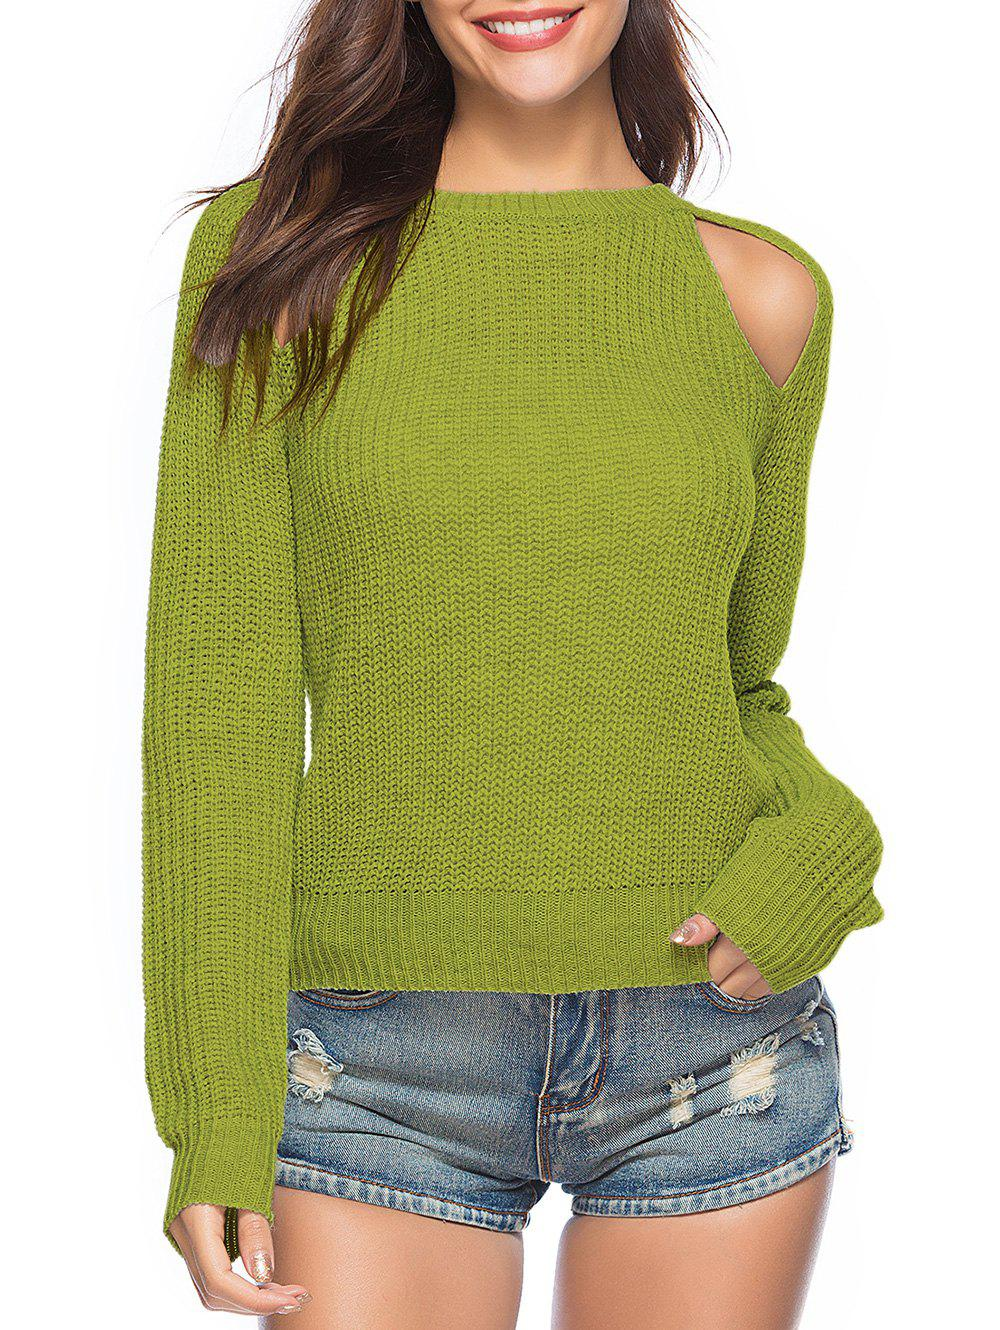 Cut Out Crew Neck Solid Sweater - PISTACHIO GREEN XL